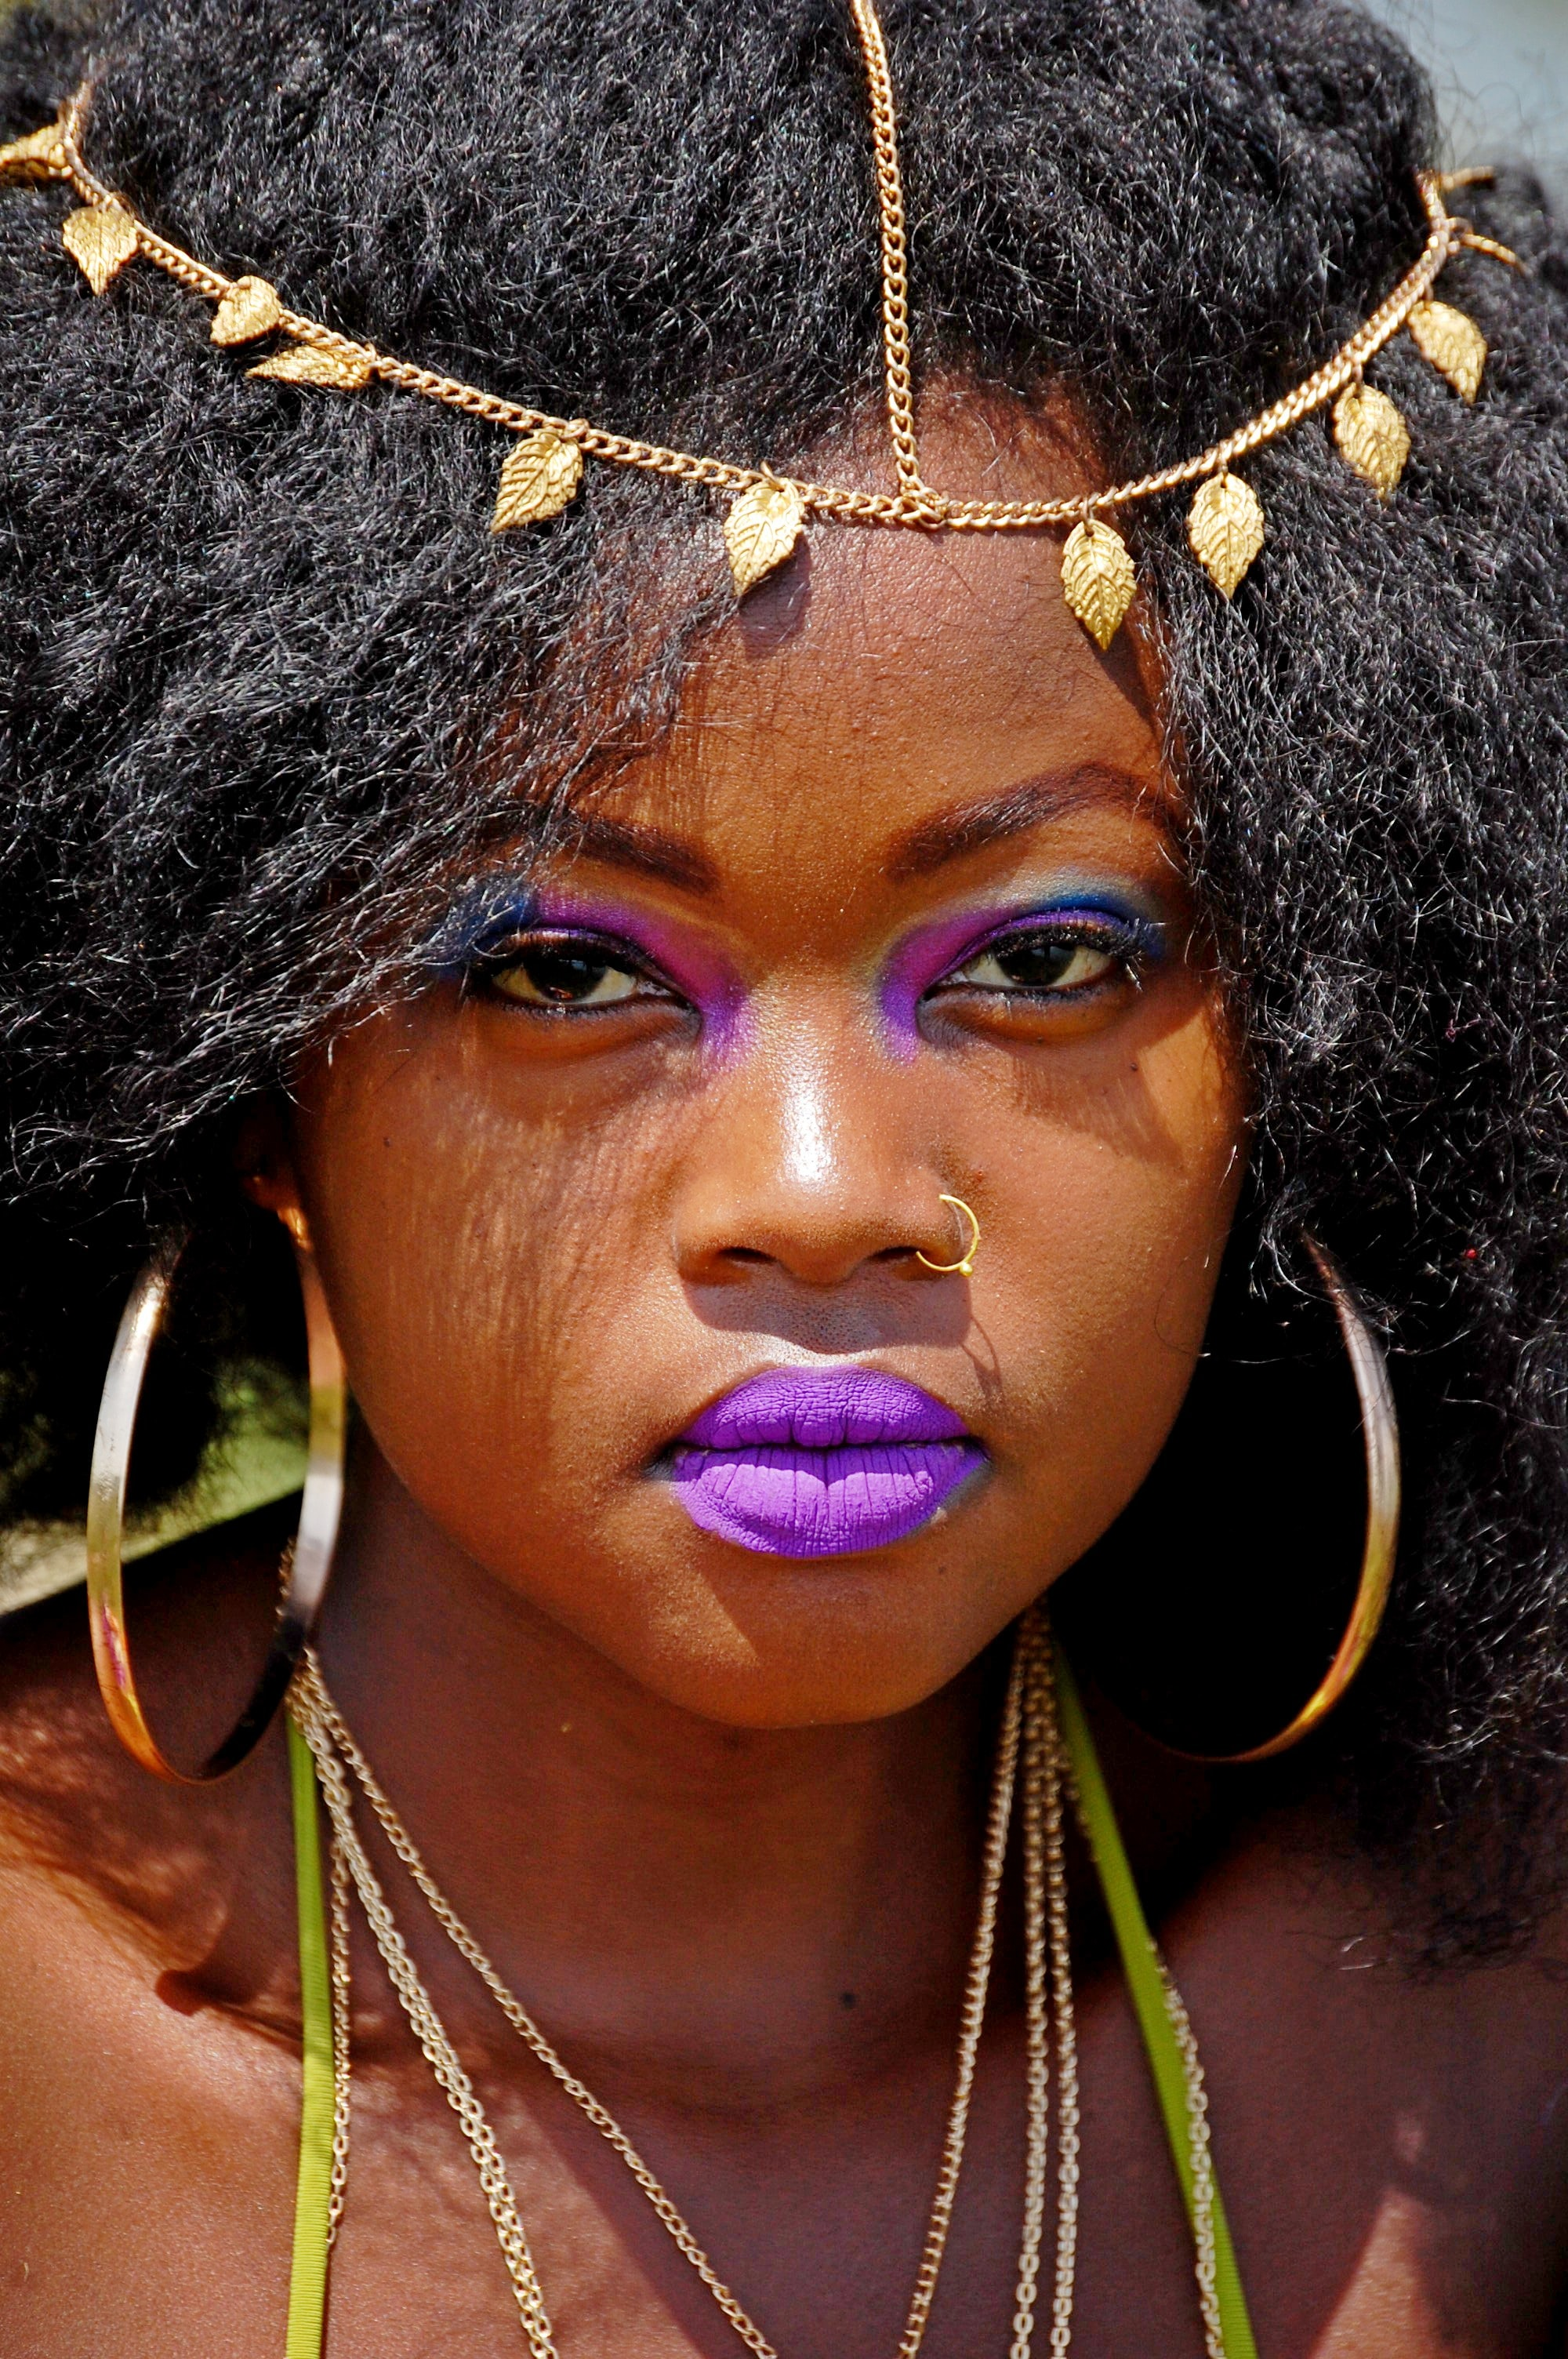 woman with black hair wears gold-colored nose ring, pair of loop earrings and purple lipstick